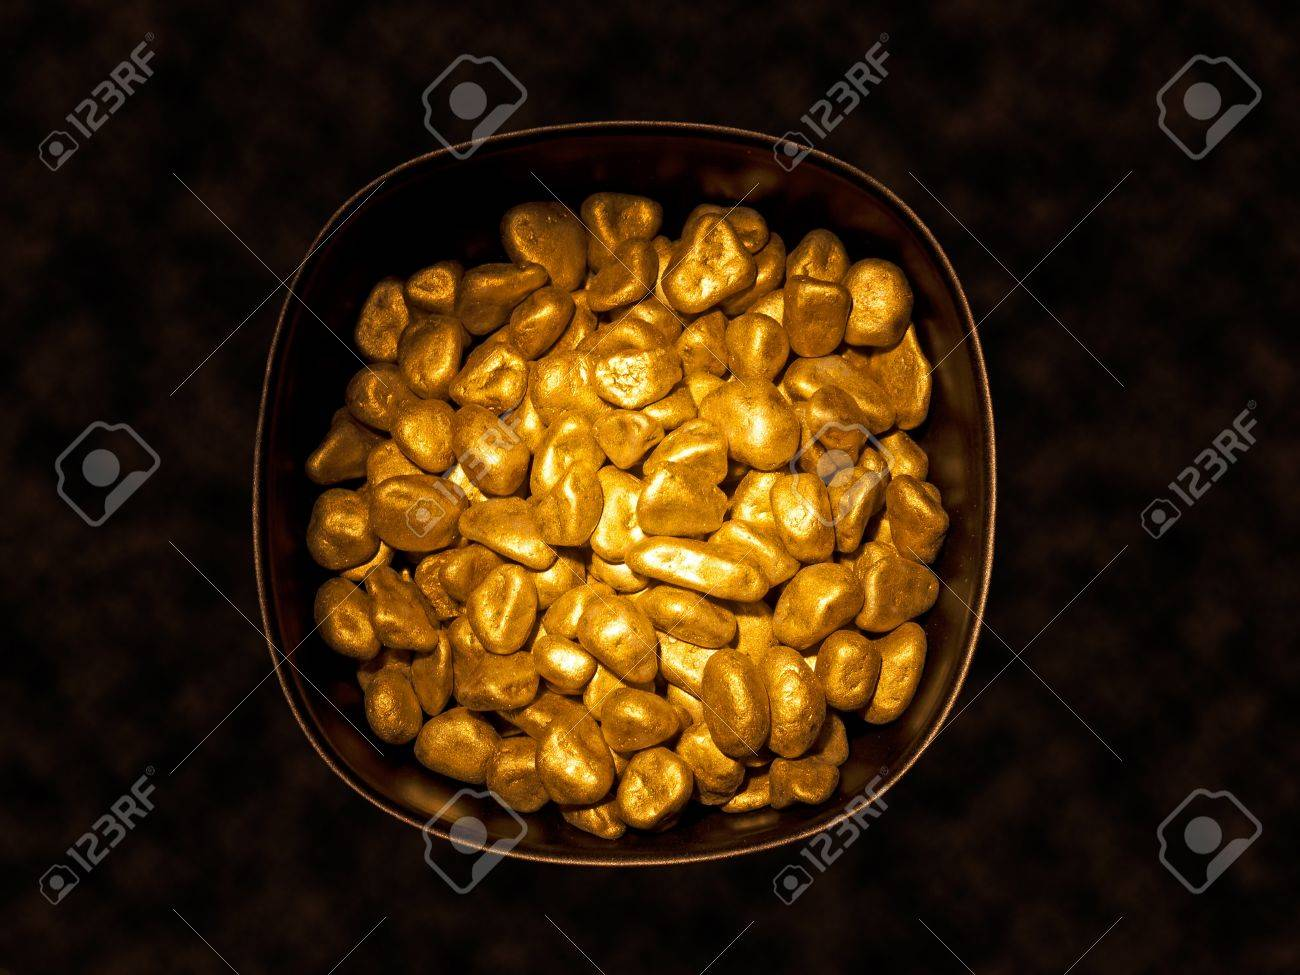 Pot of gold - symbol of wealth Stock Photo - 15050037